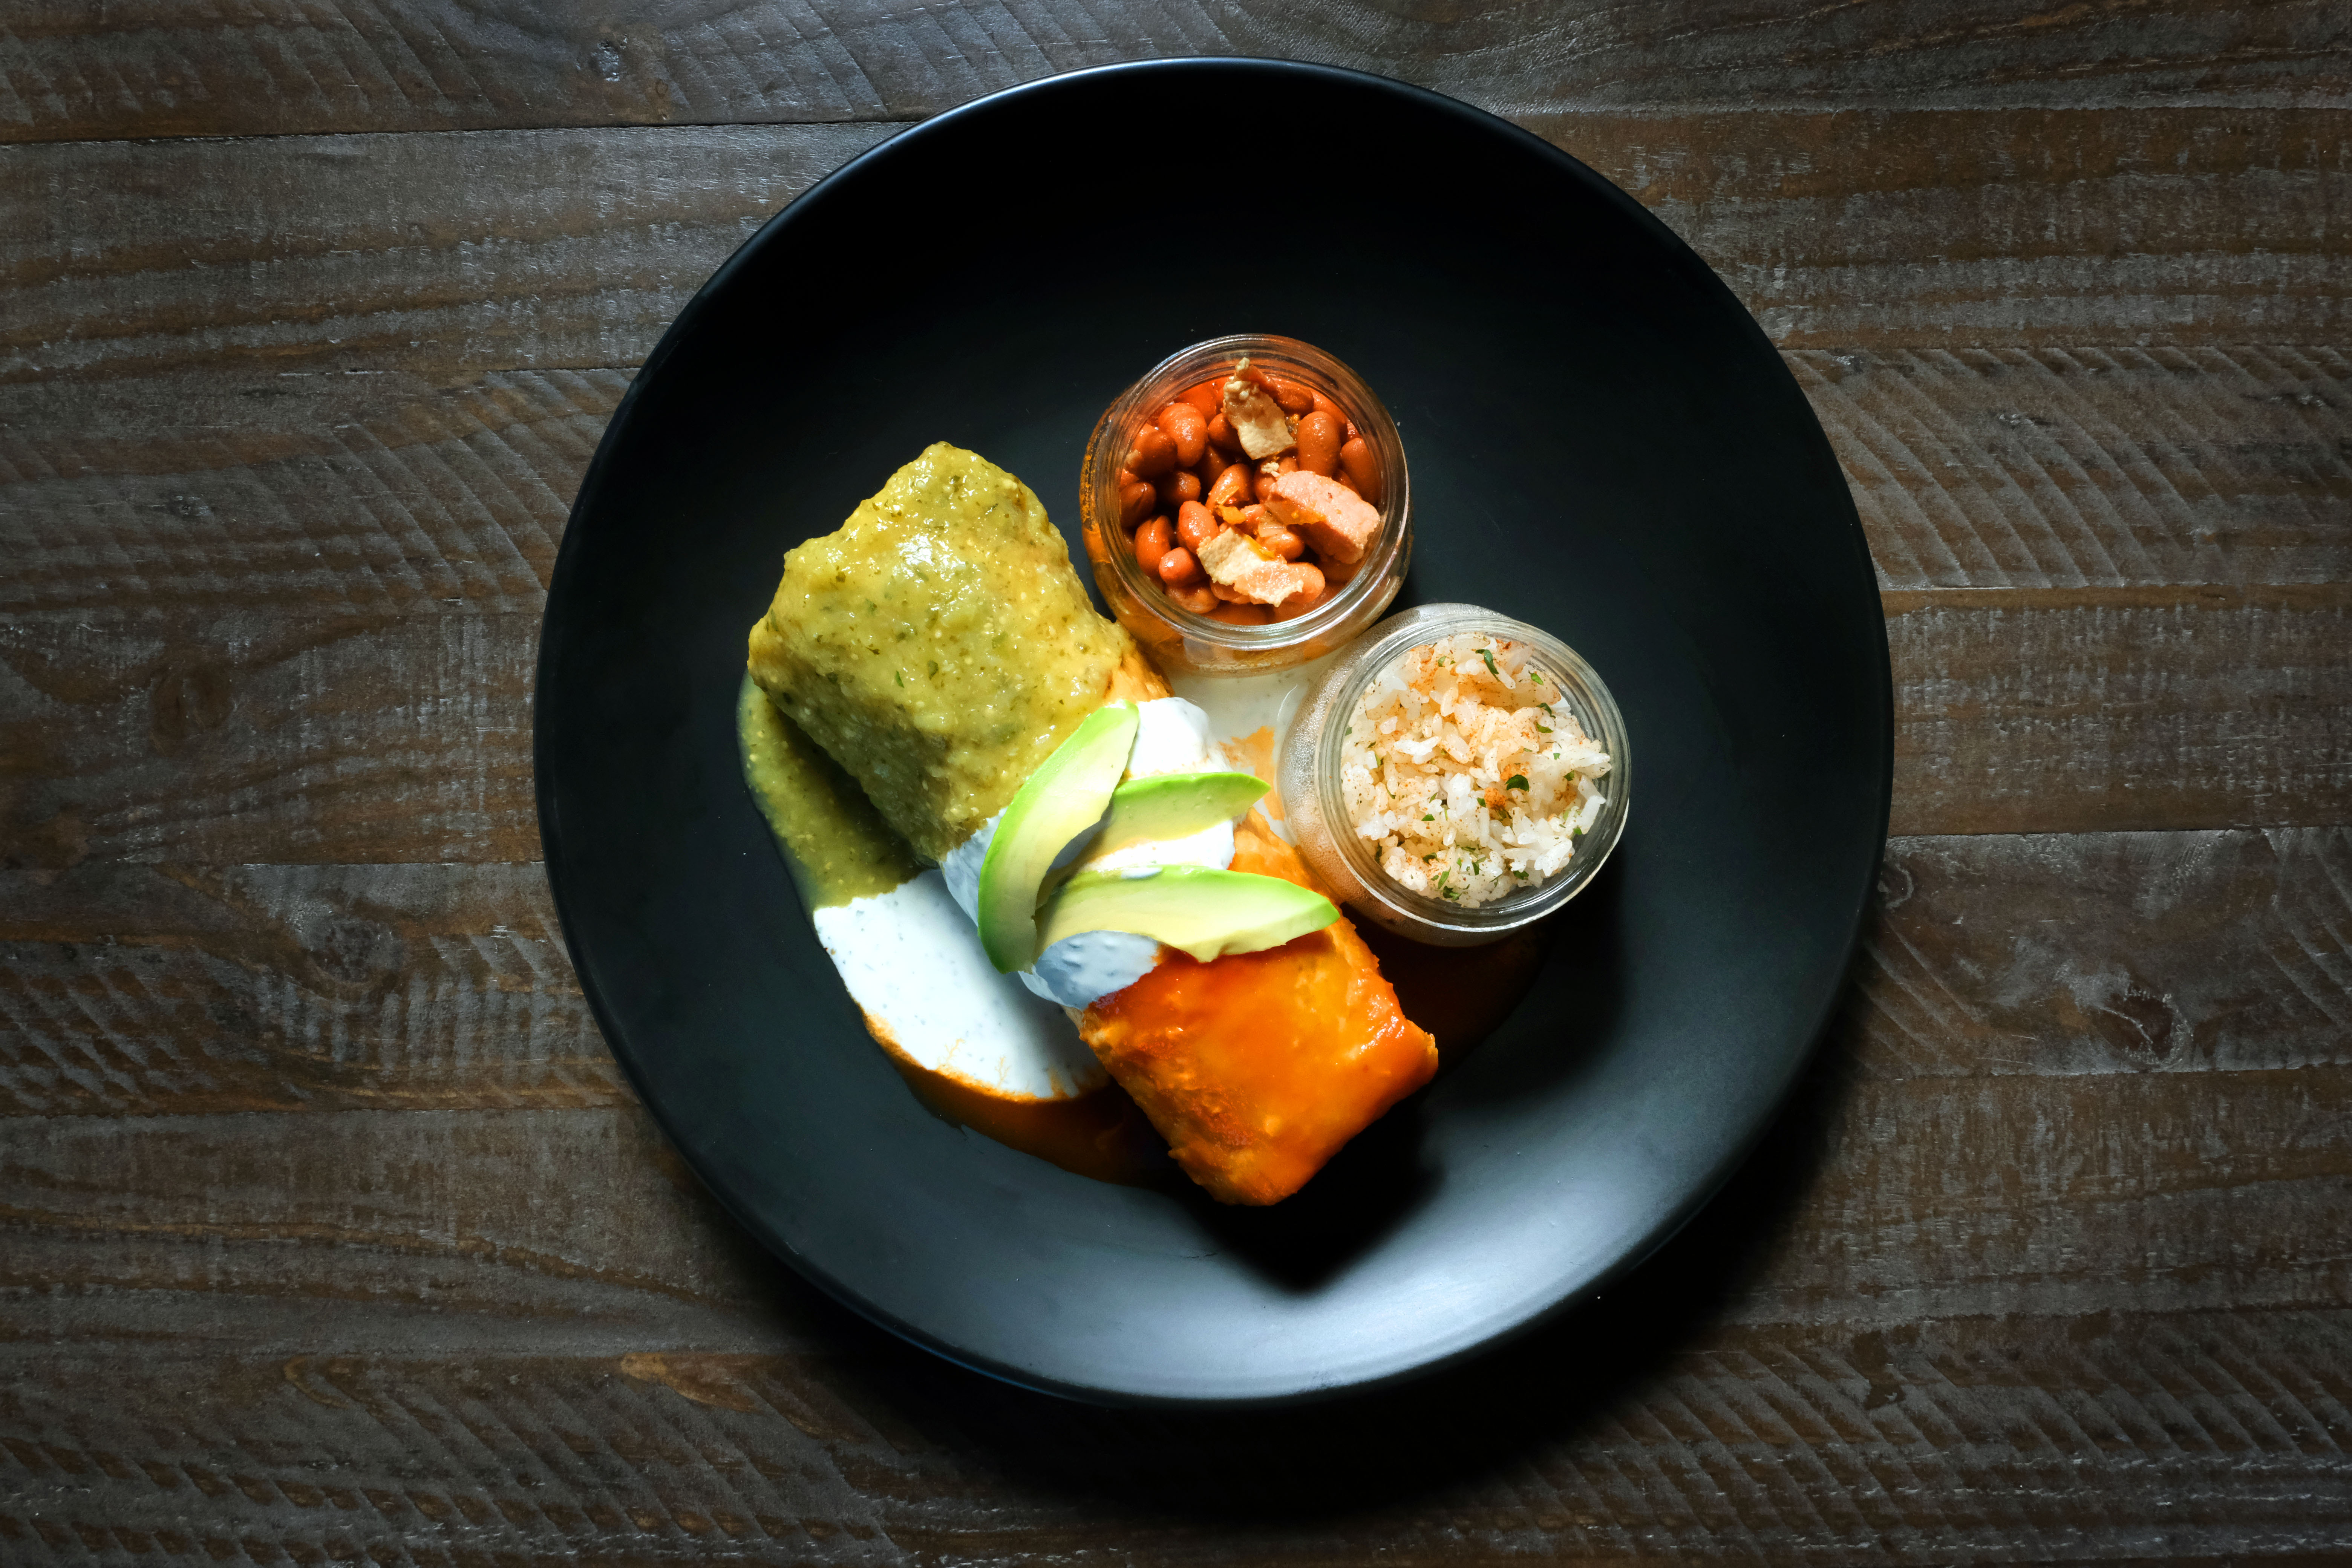 Triple threat chimichanga with green, white, and red sauces